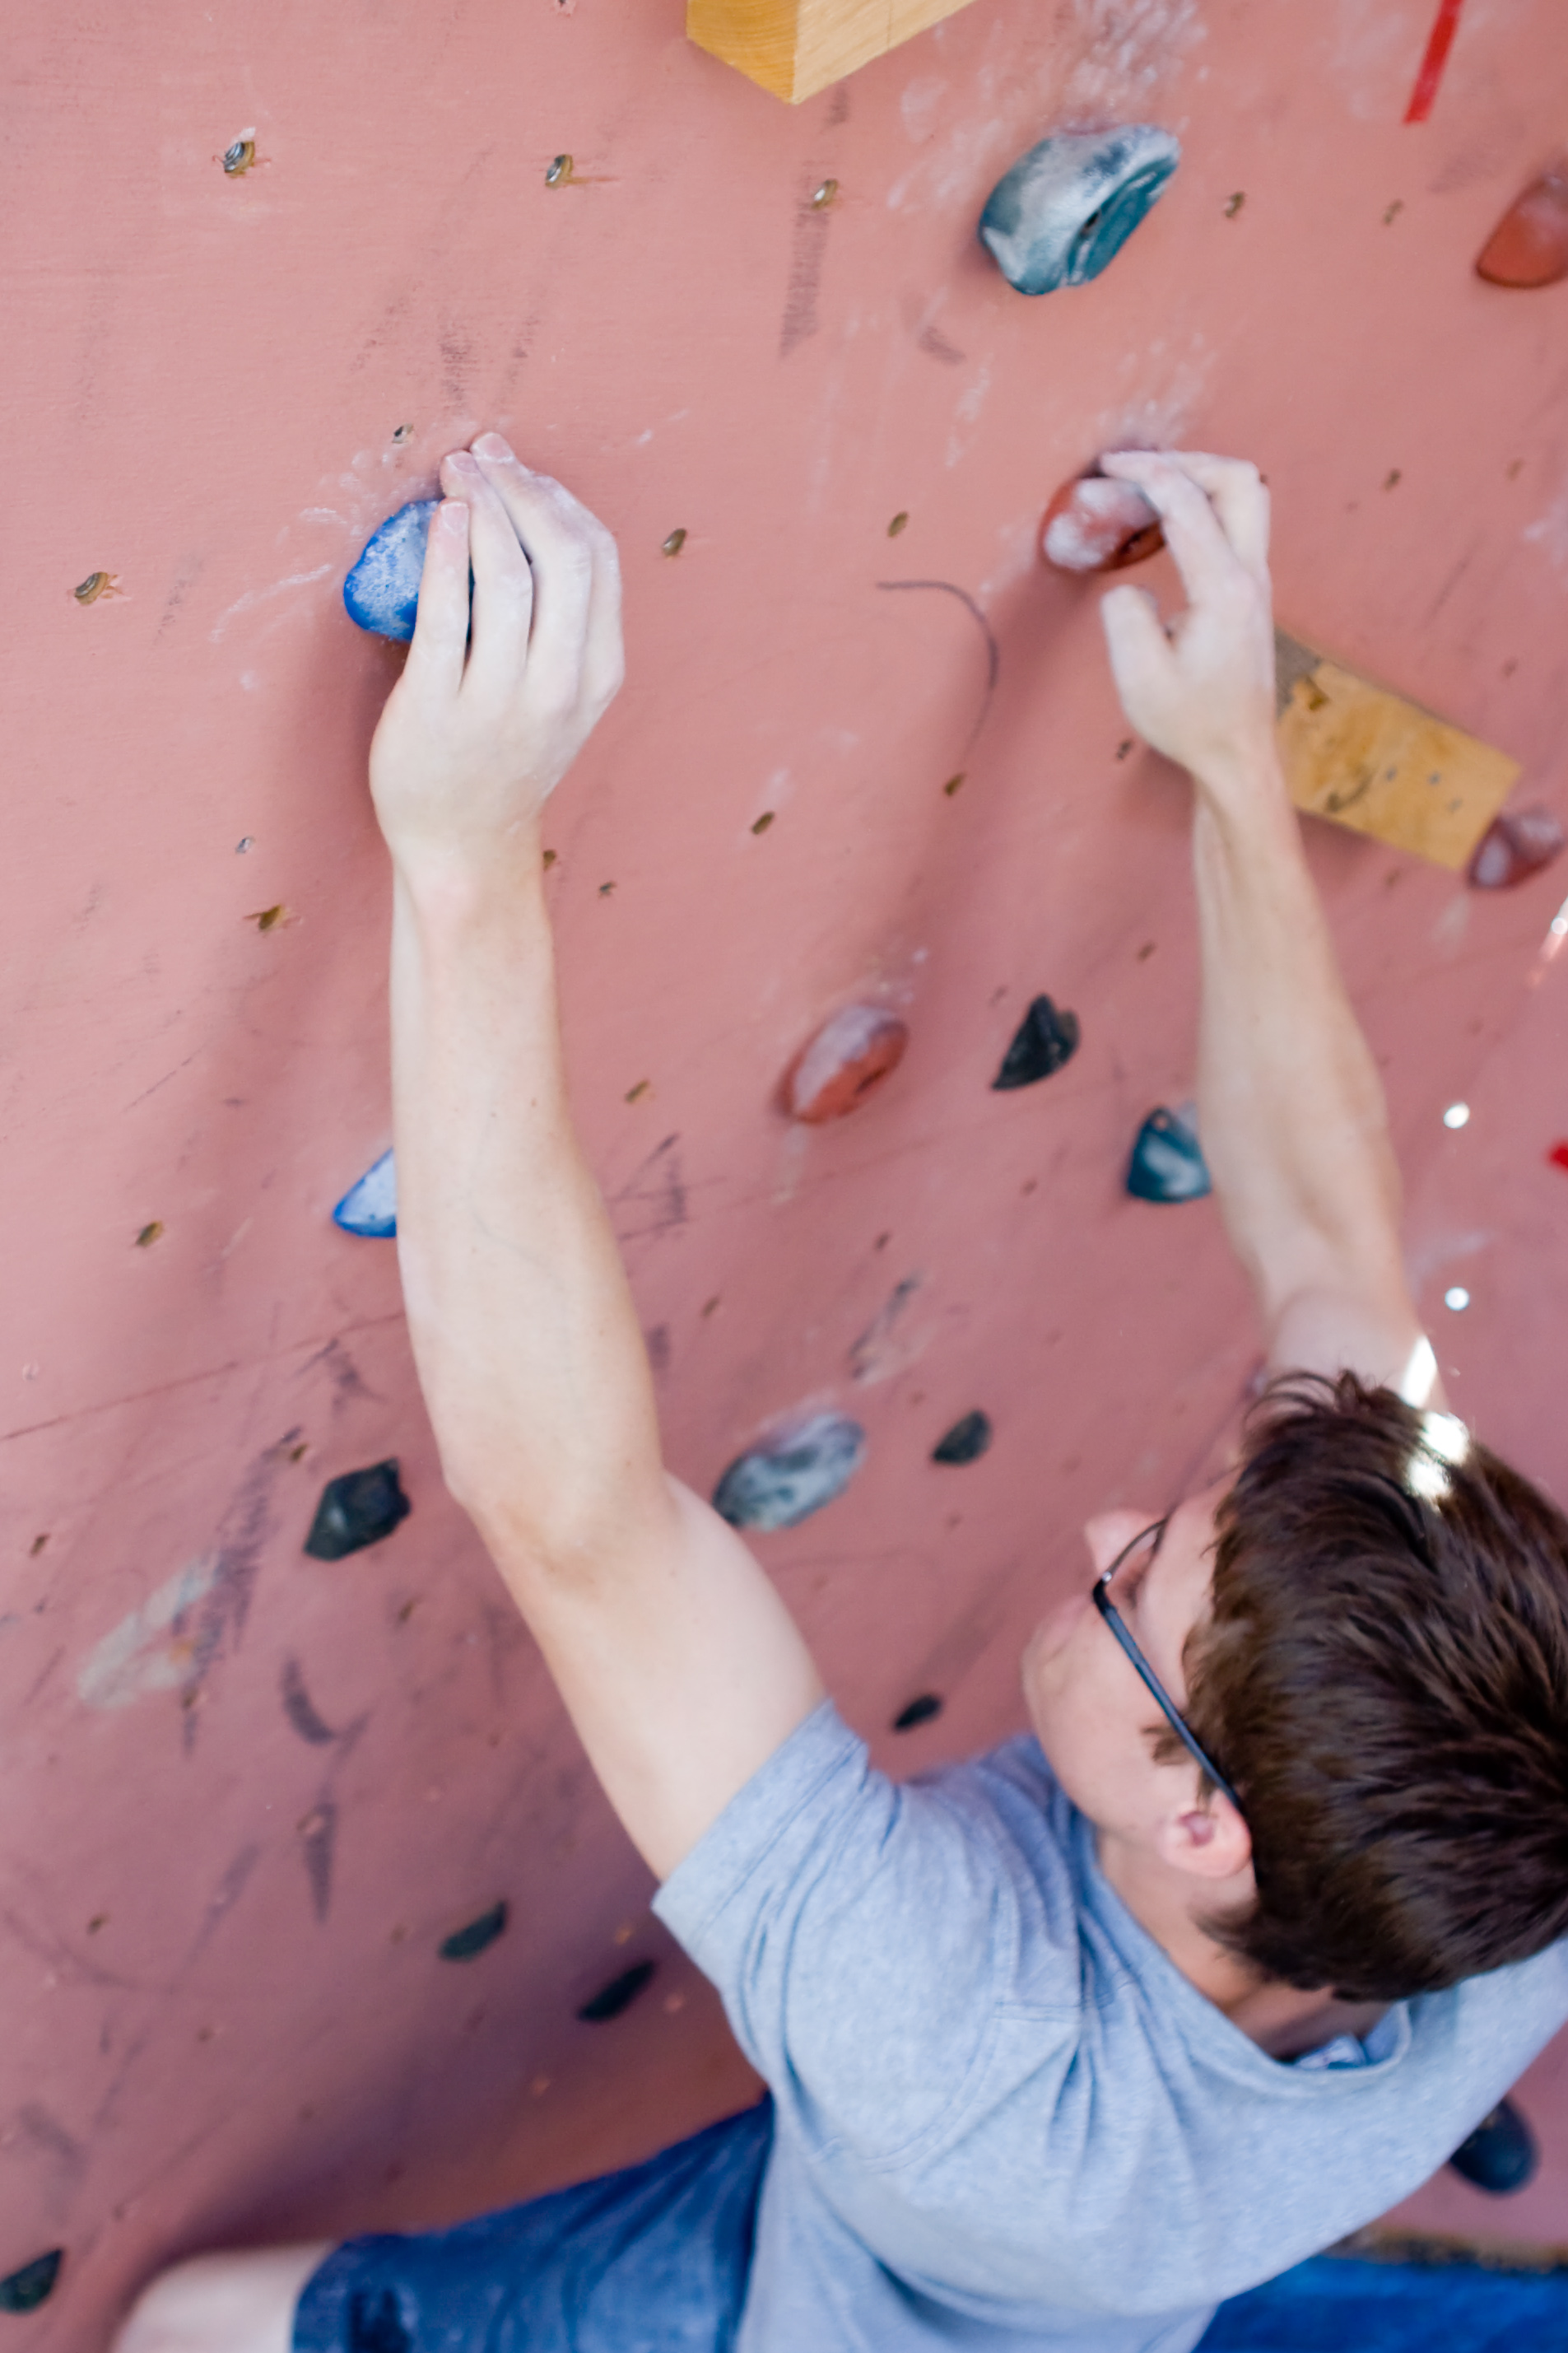 Indoor climber, Determination, Power, Wall, Strength, HQ Photo